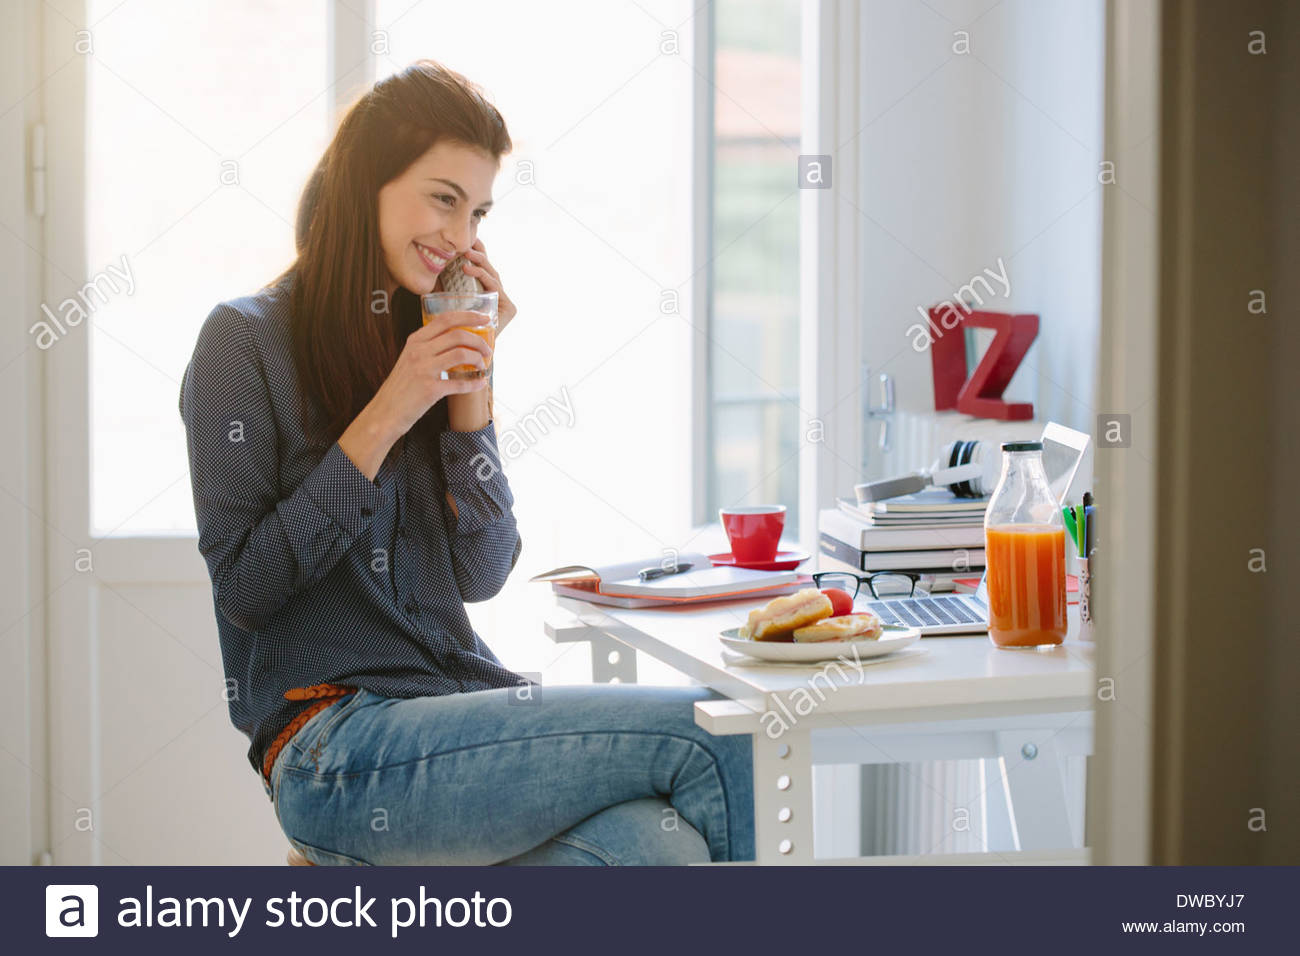 Young woman using telephone while breakfasting - Stock Image